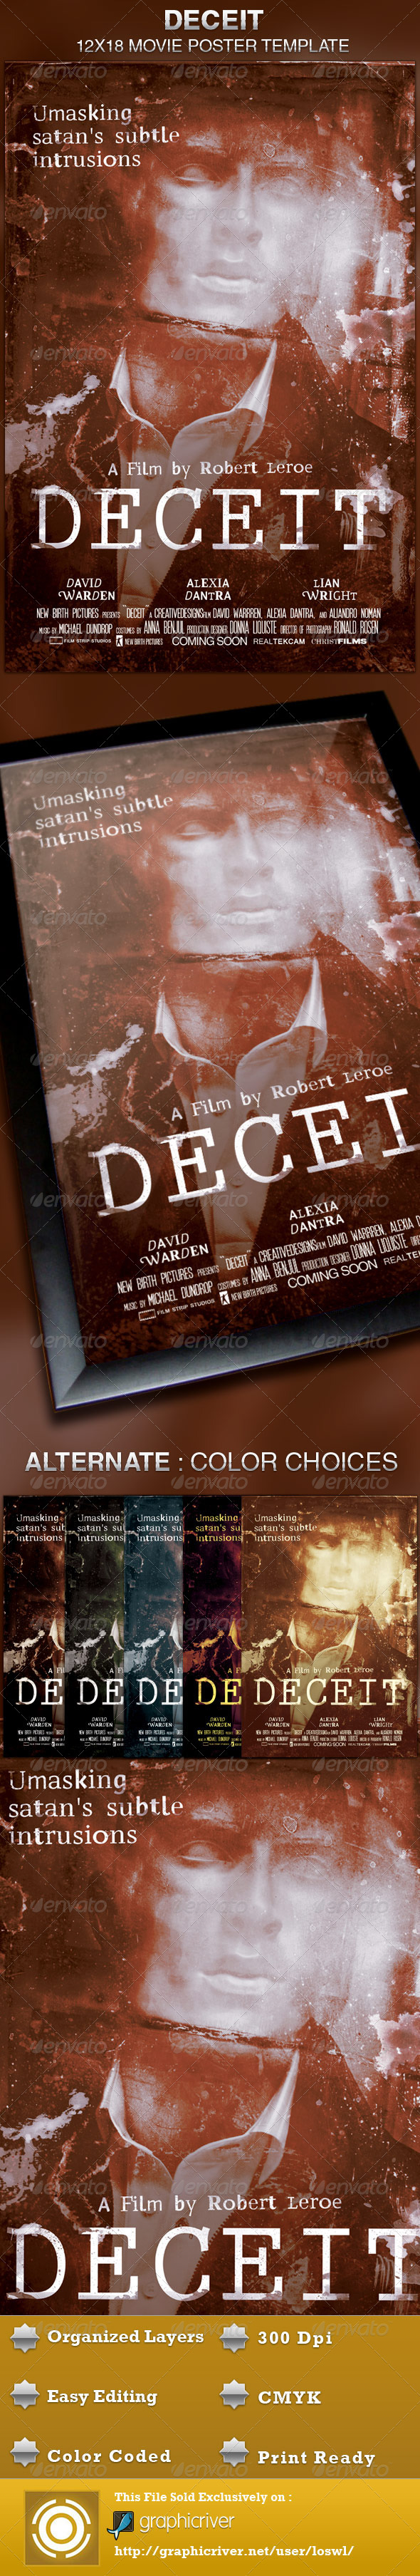 Deceit Movie Poster Template - Church Flyers